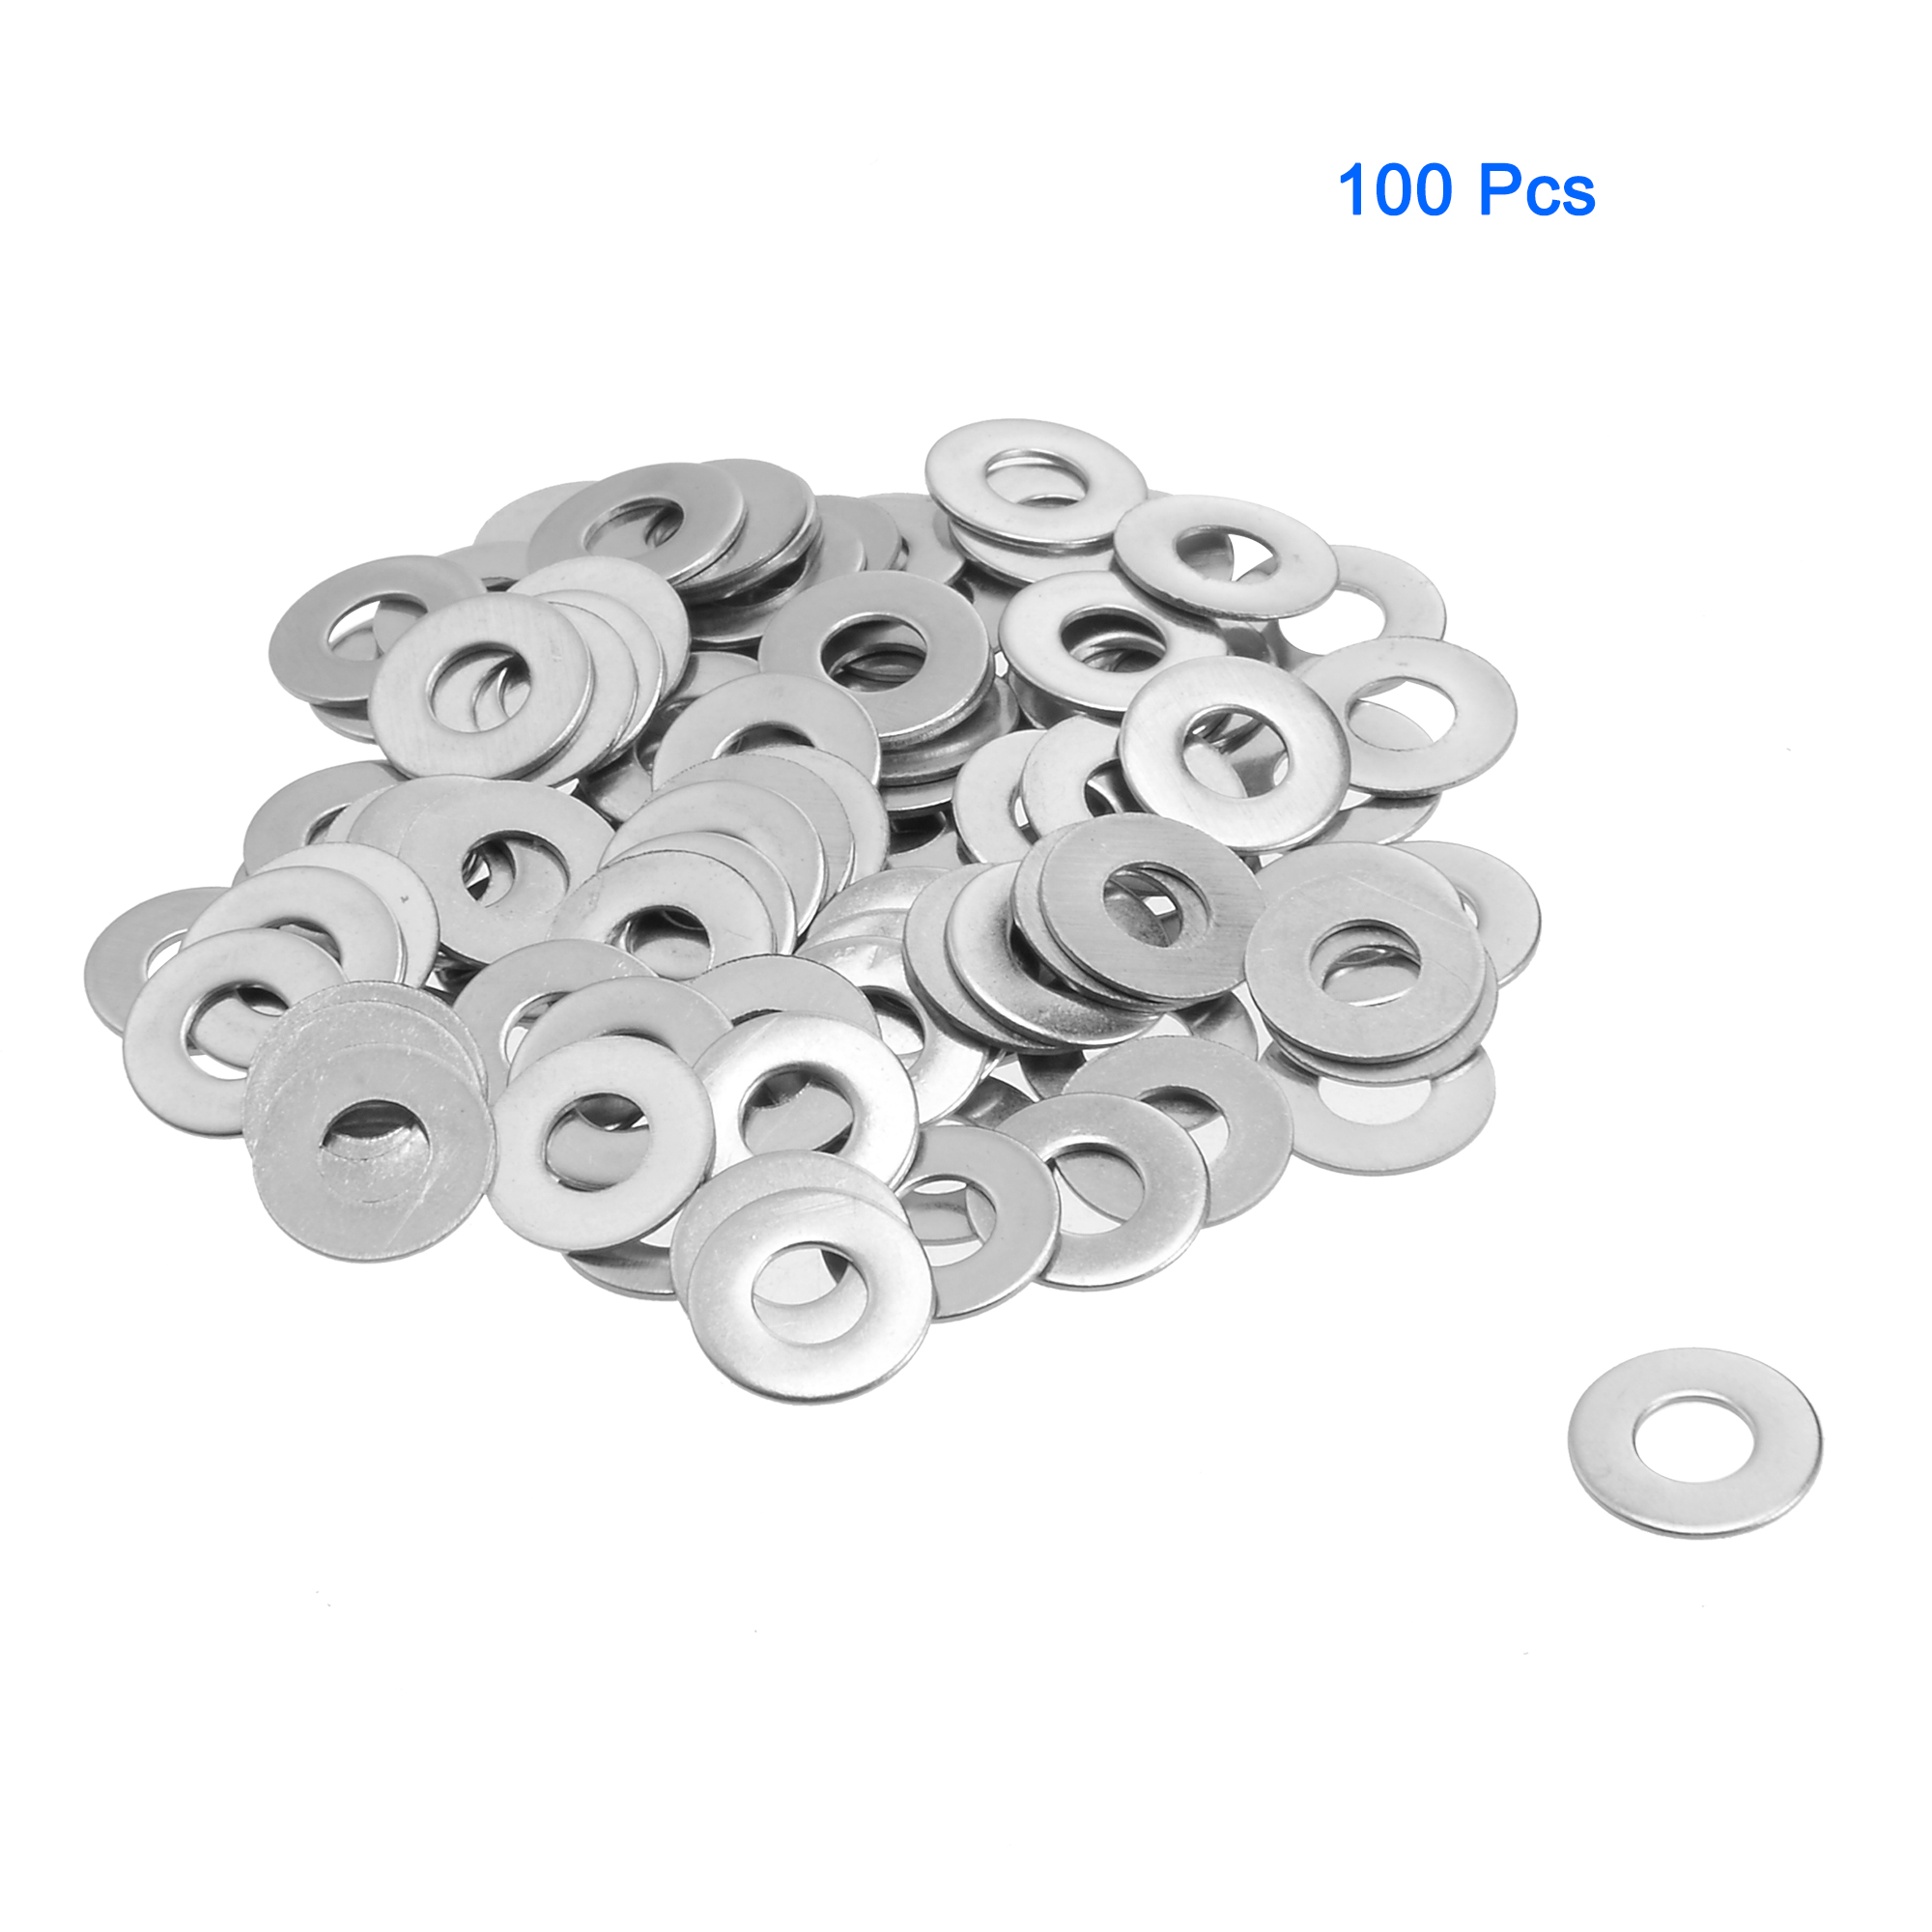 100Pcs M4x10mmx0.5mm Stainless Steel Metric Round Flat Washer for Bolt Screw